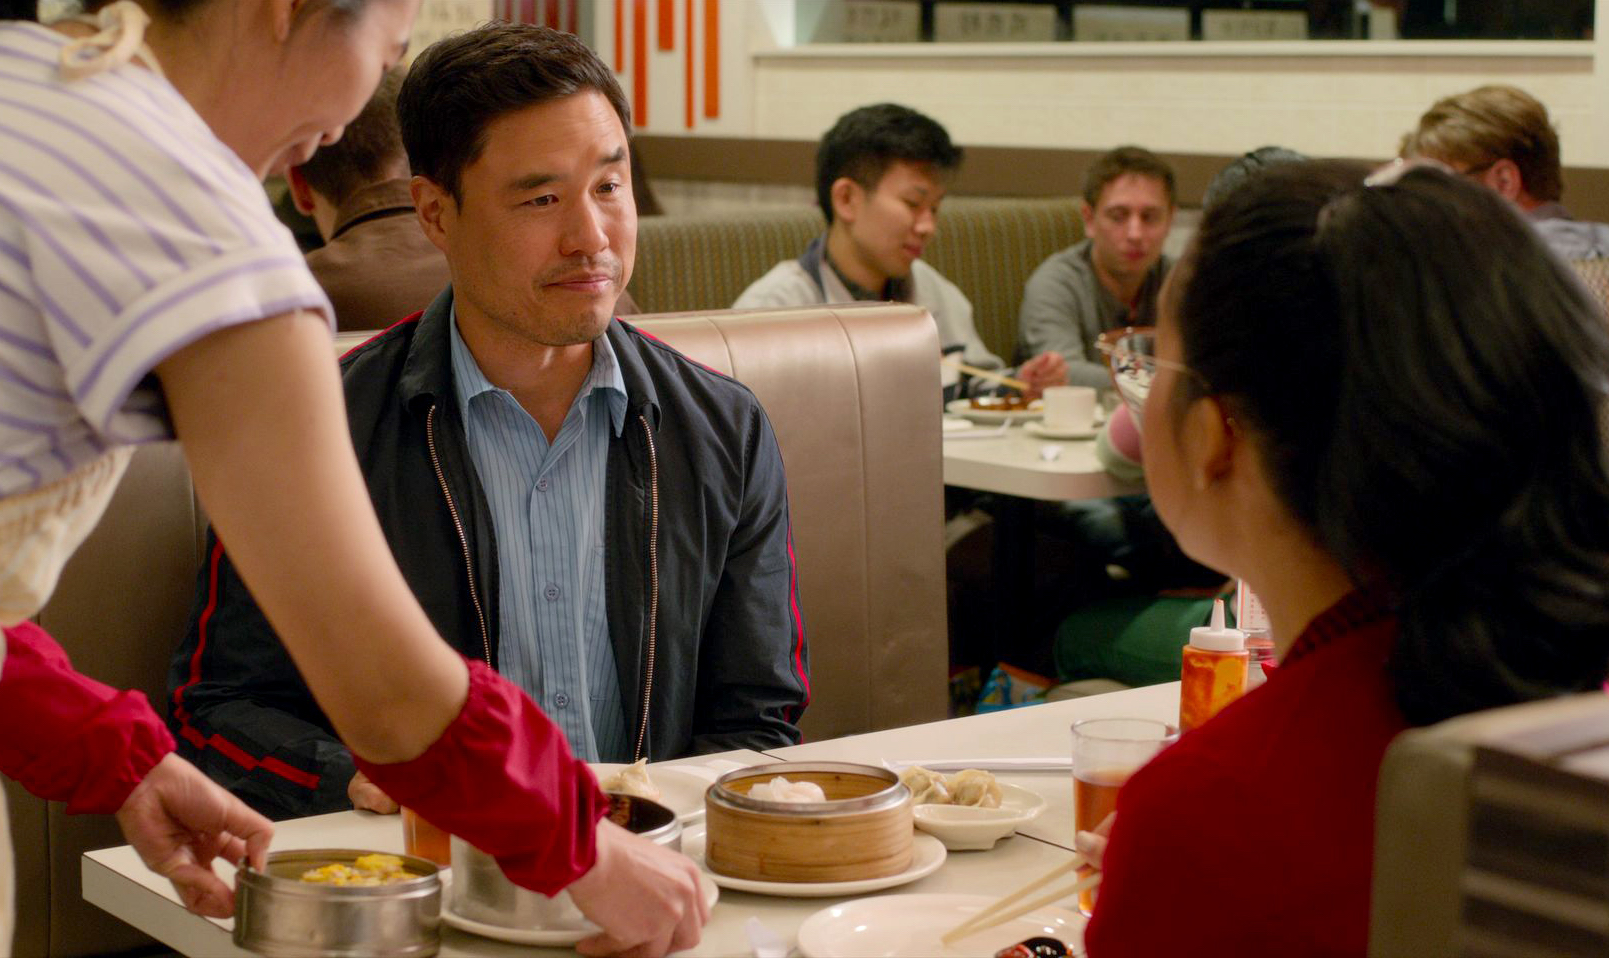 Vancouver restaurant makes appearance in Netflix film 'Always Be My Maybe'